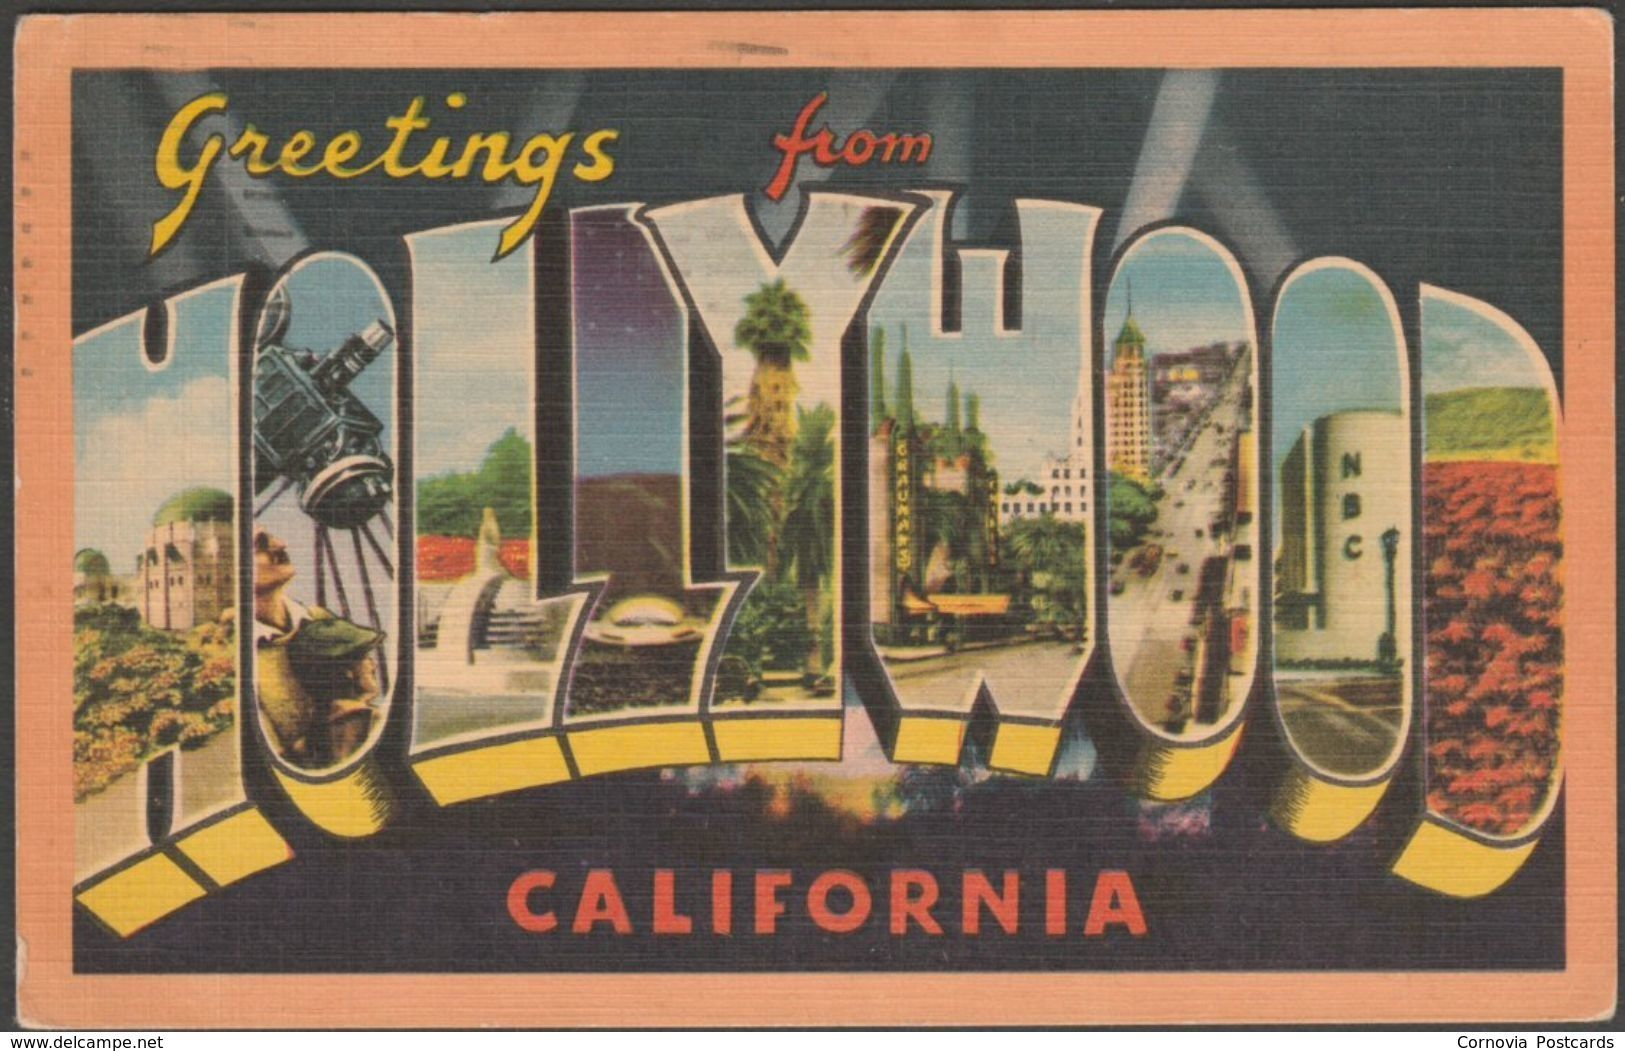 Greetings from hollywood california 1956 longshaw card co greetings from hollywood california 1956 longshaw card co postcard m4hsunfo